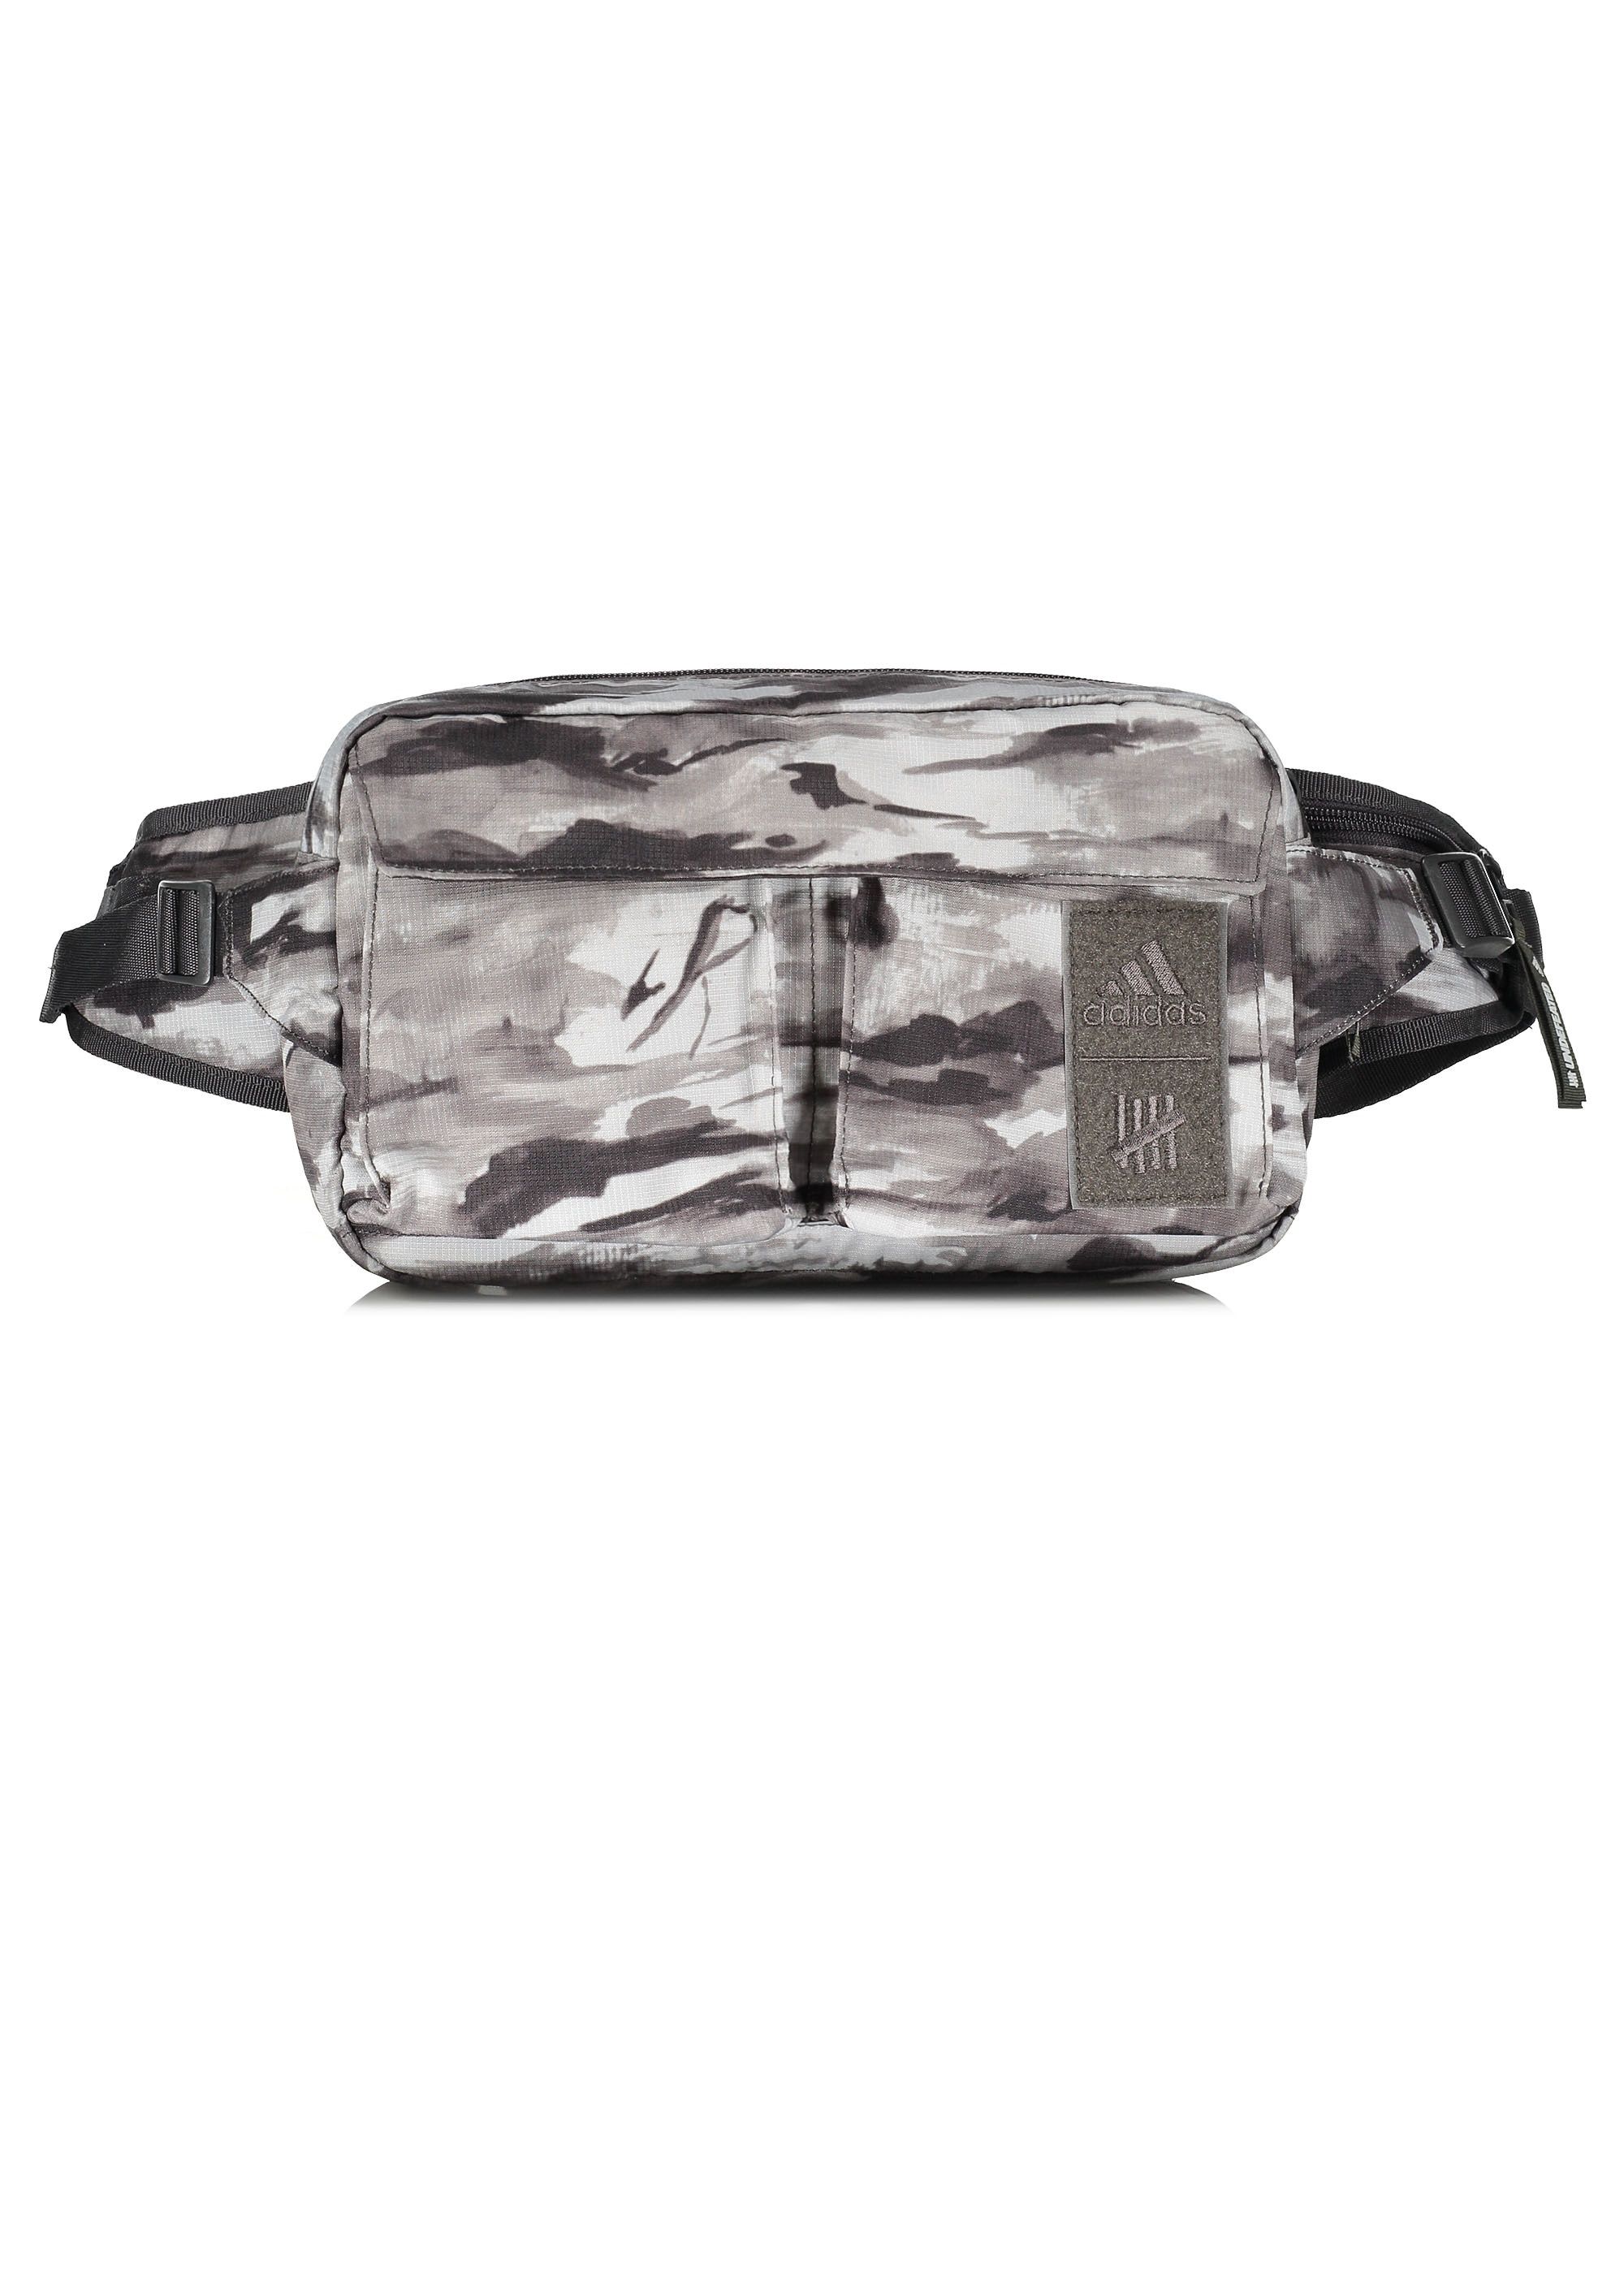 adidas Originals Apparel x UNDFTD Belt Bag - Multi - Bags from Triads UK